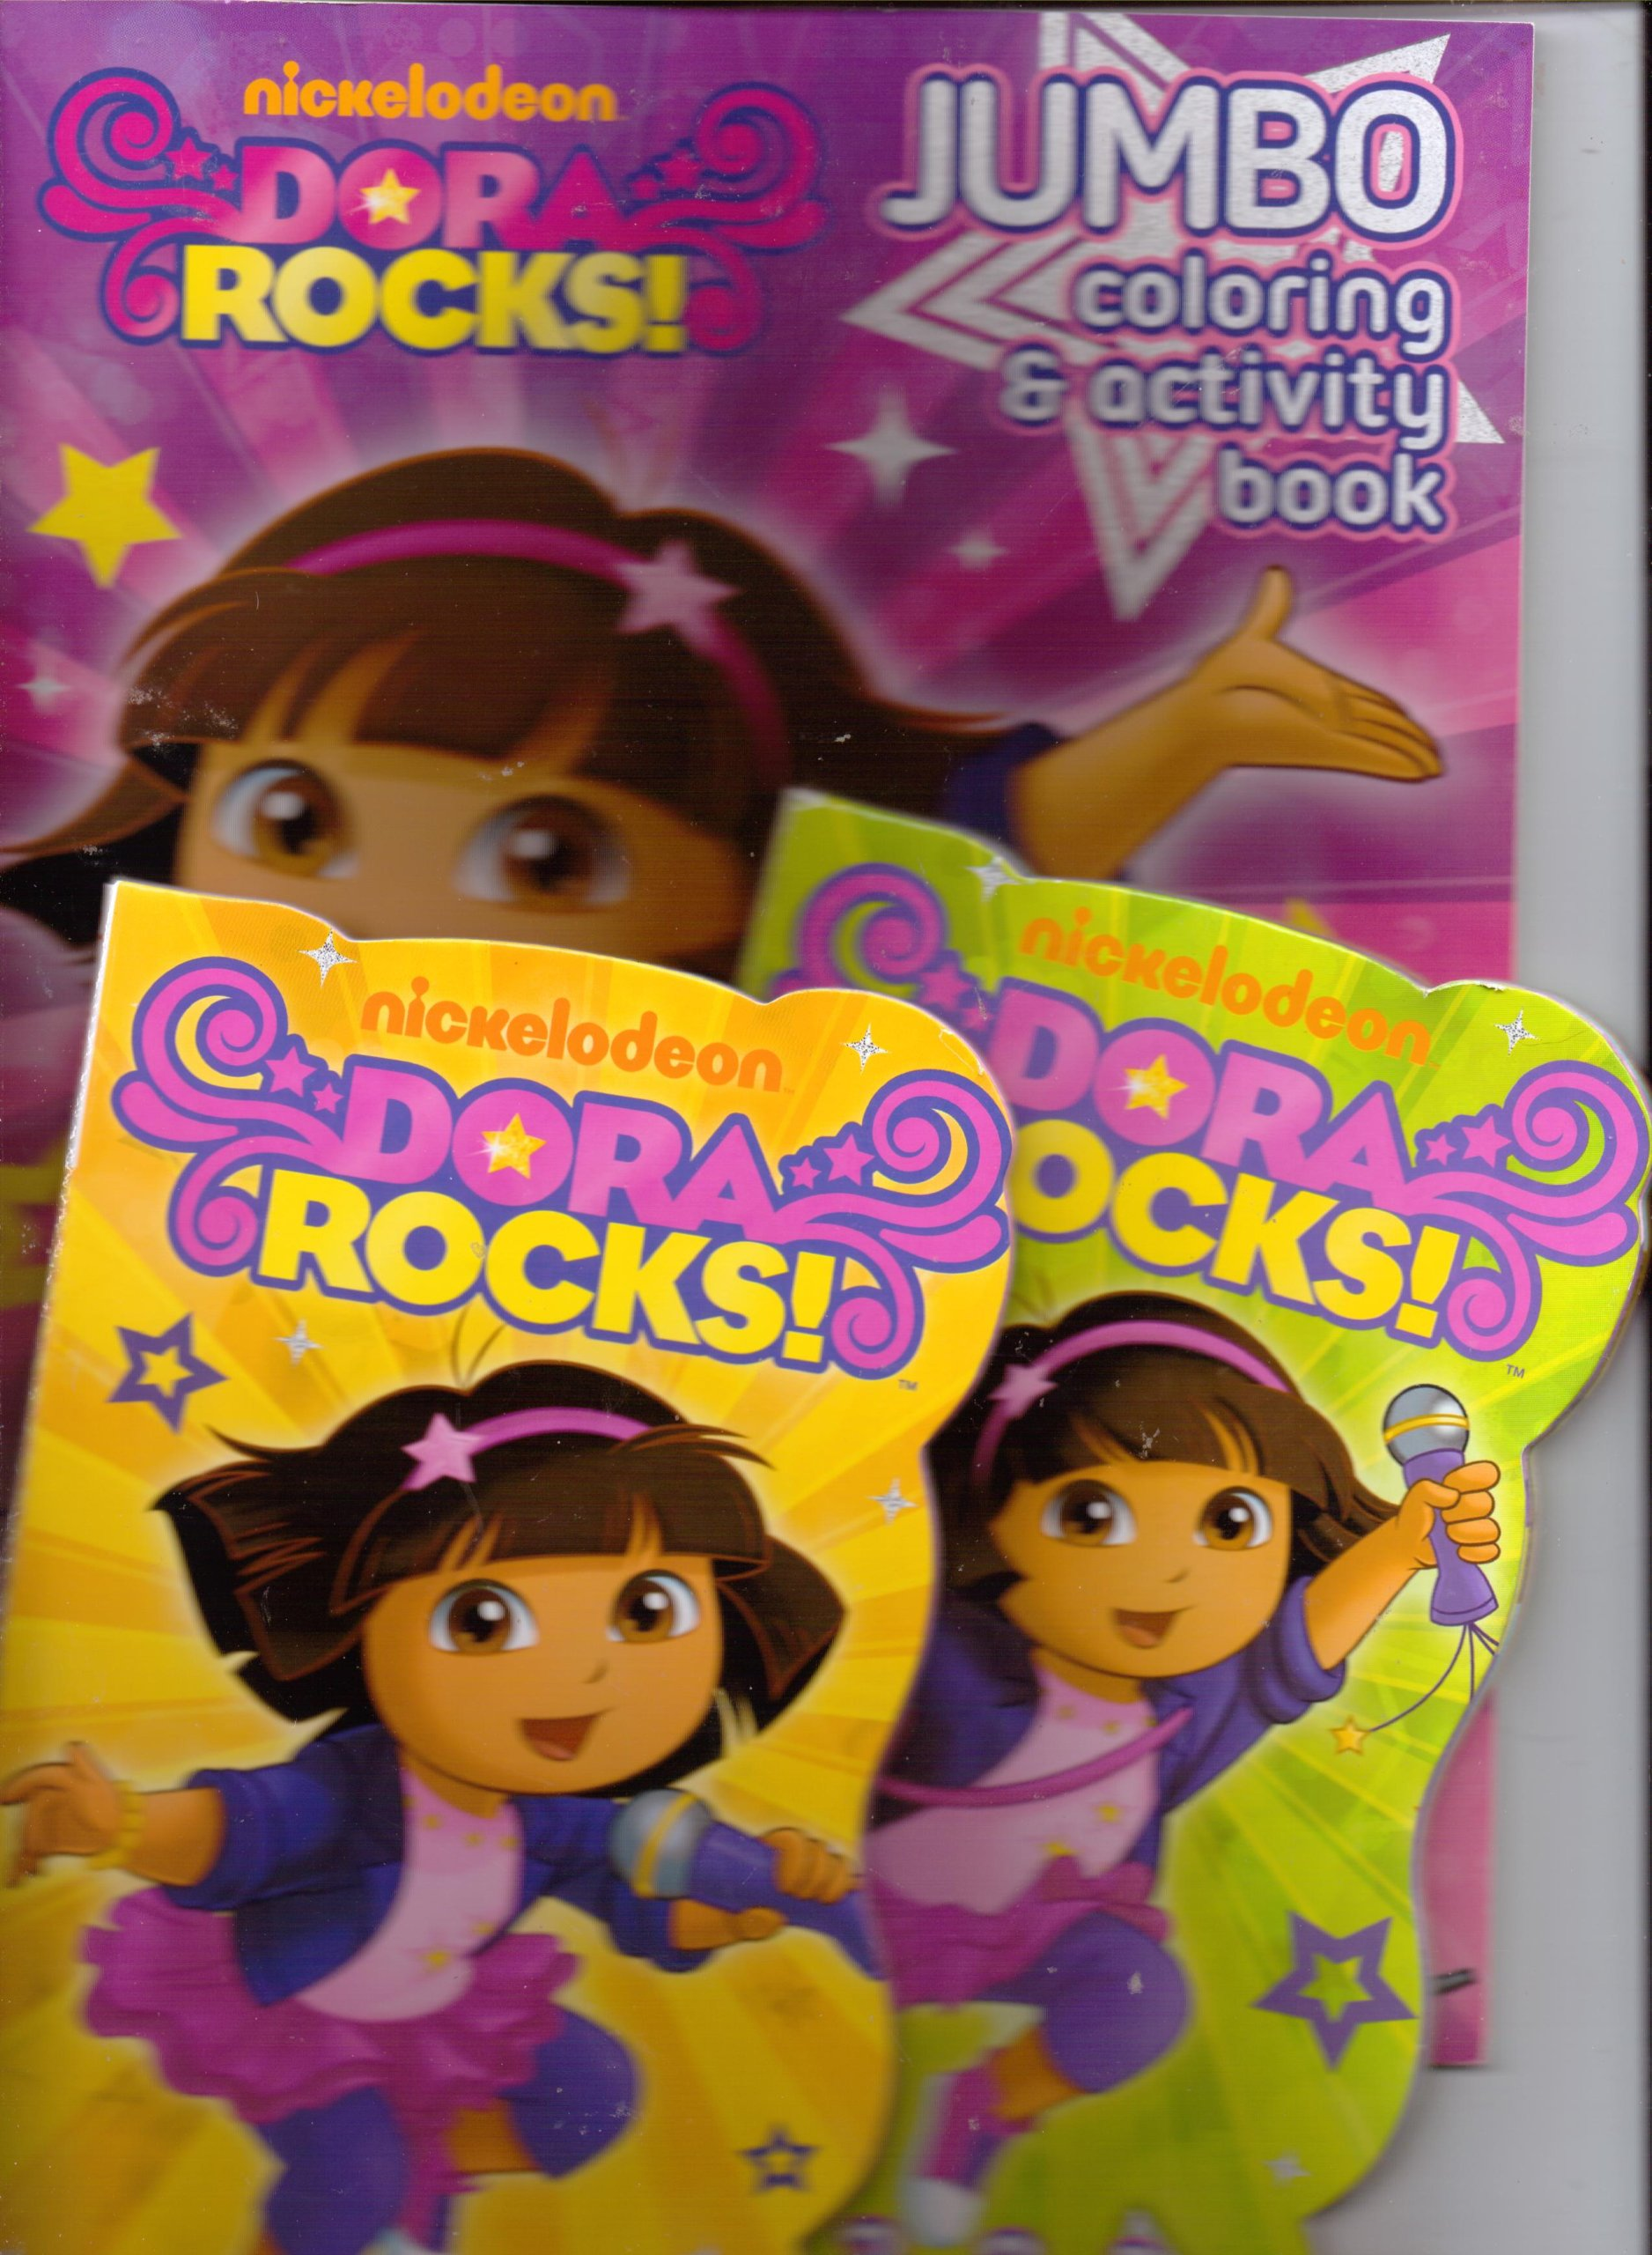 Dora Rocks! Sing Along with Me! & 3... 2... 1... Let's Jam Board Books & Move to the Music Coloring (Dora the Explorer) ebook